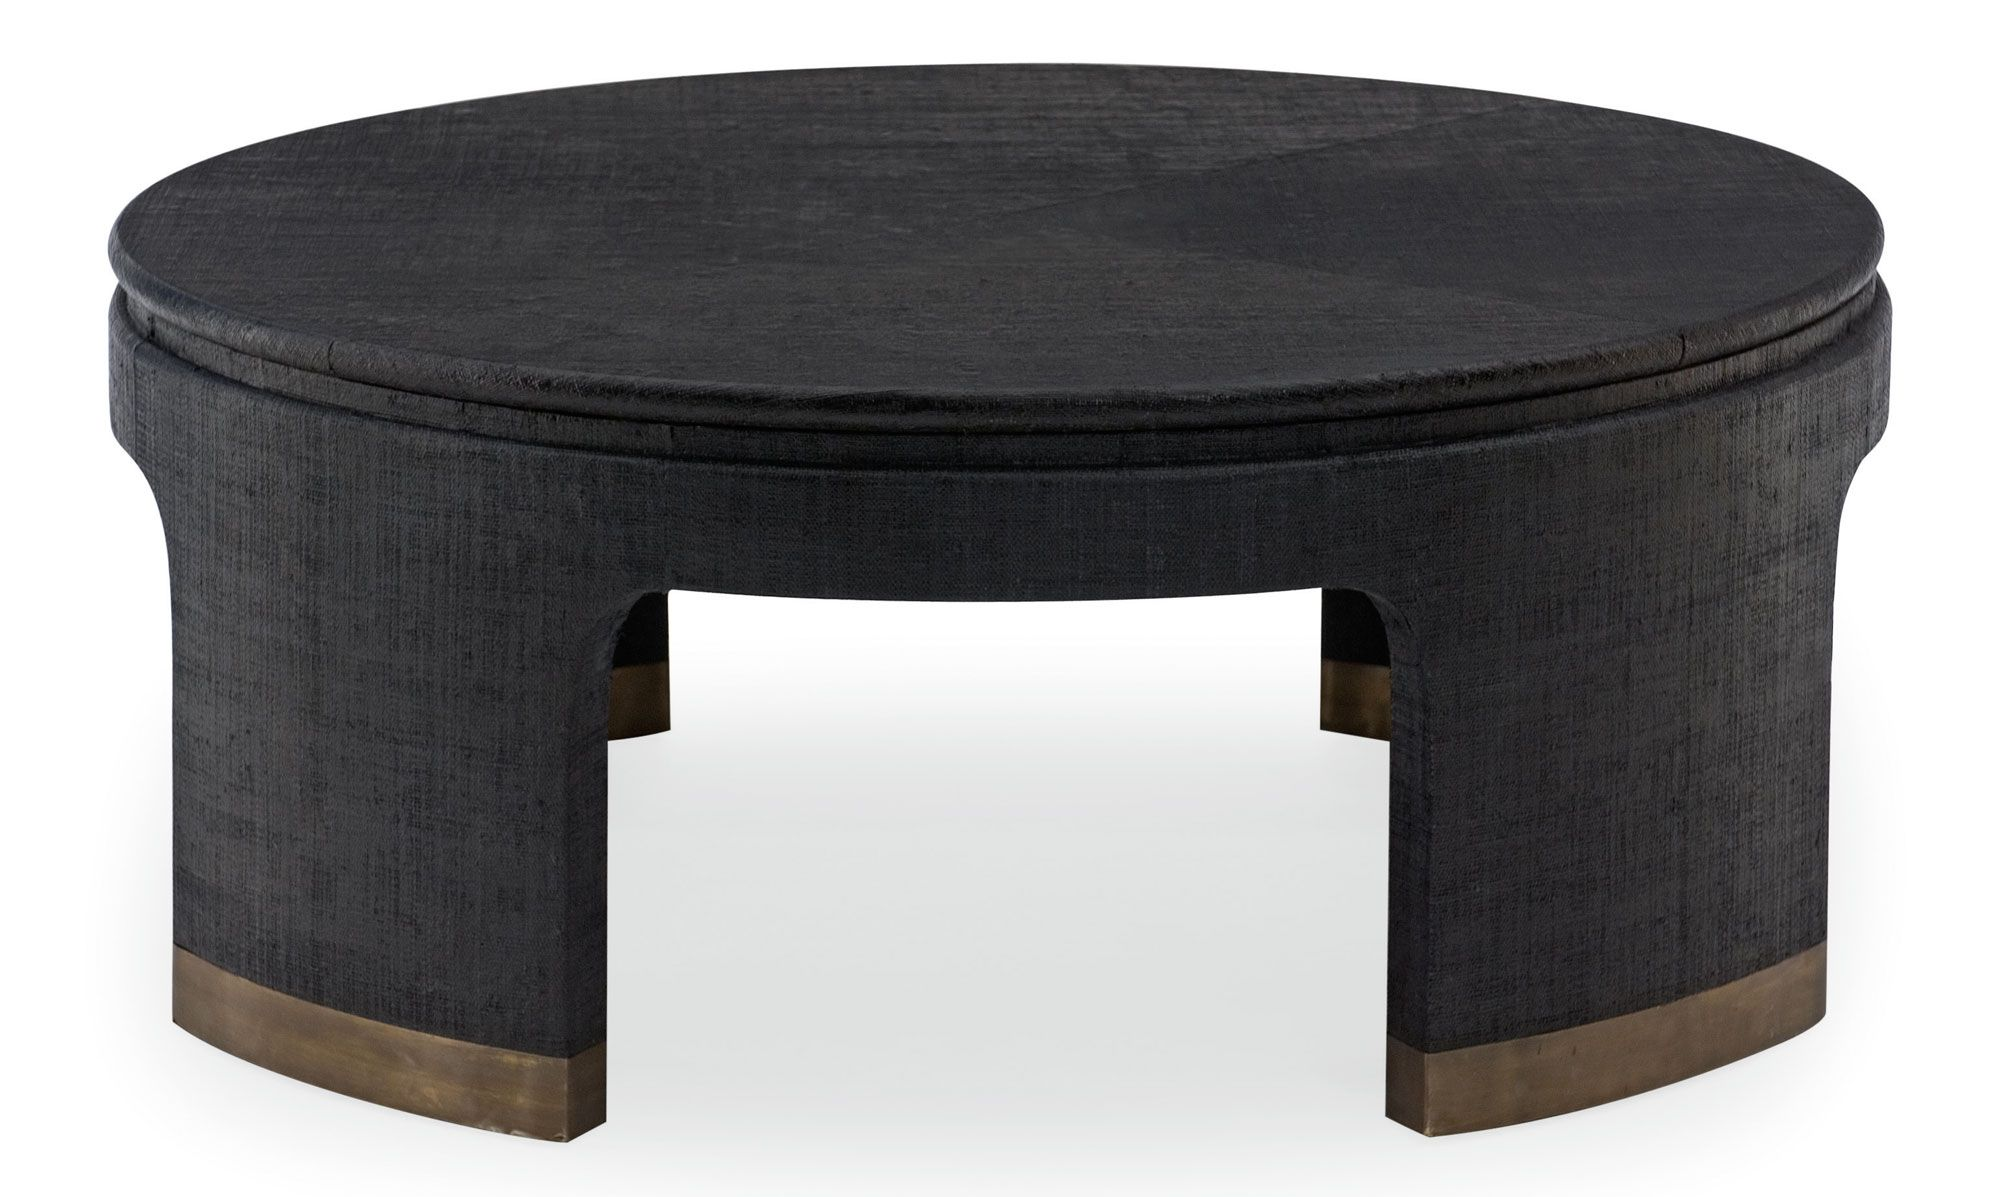 Round Cocktail Table, $873 Net $135 In Bound Freight To A